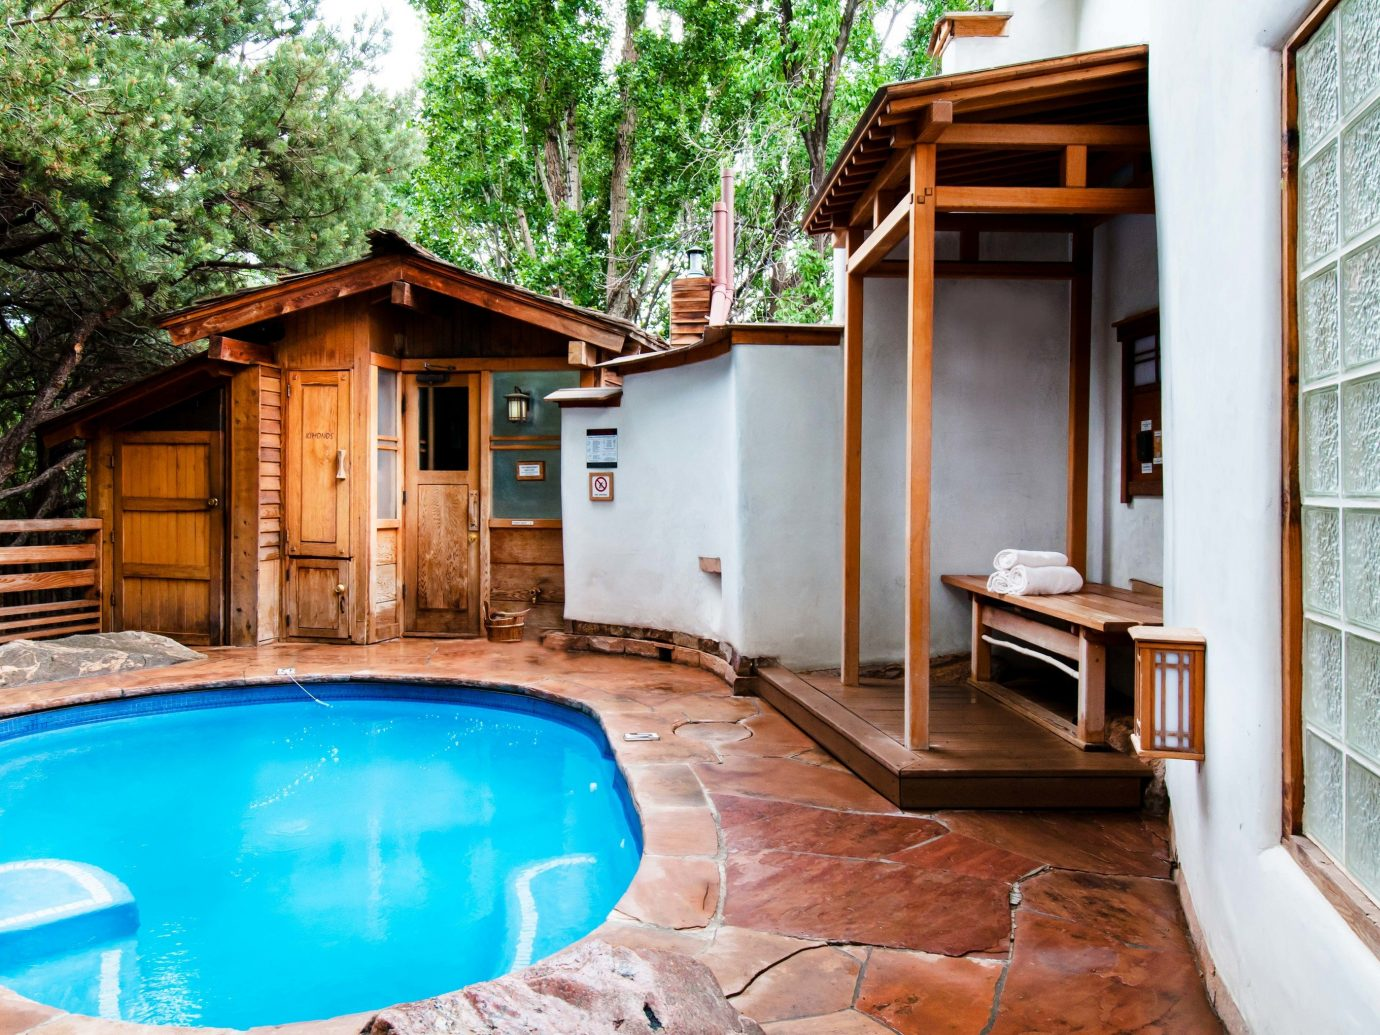 property home swimming pool real estate house estate leisure Resort backyard cottage wood Villa outdoor structure amenity vacation yard